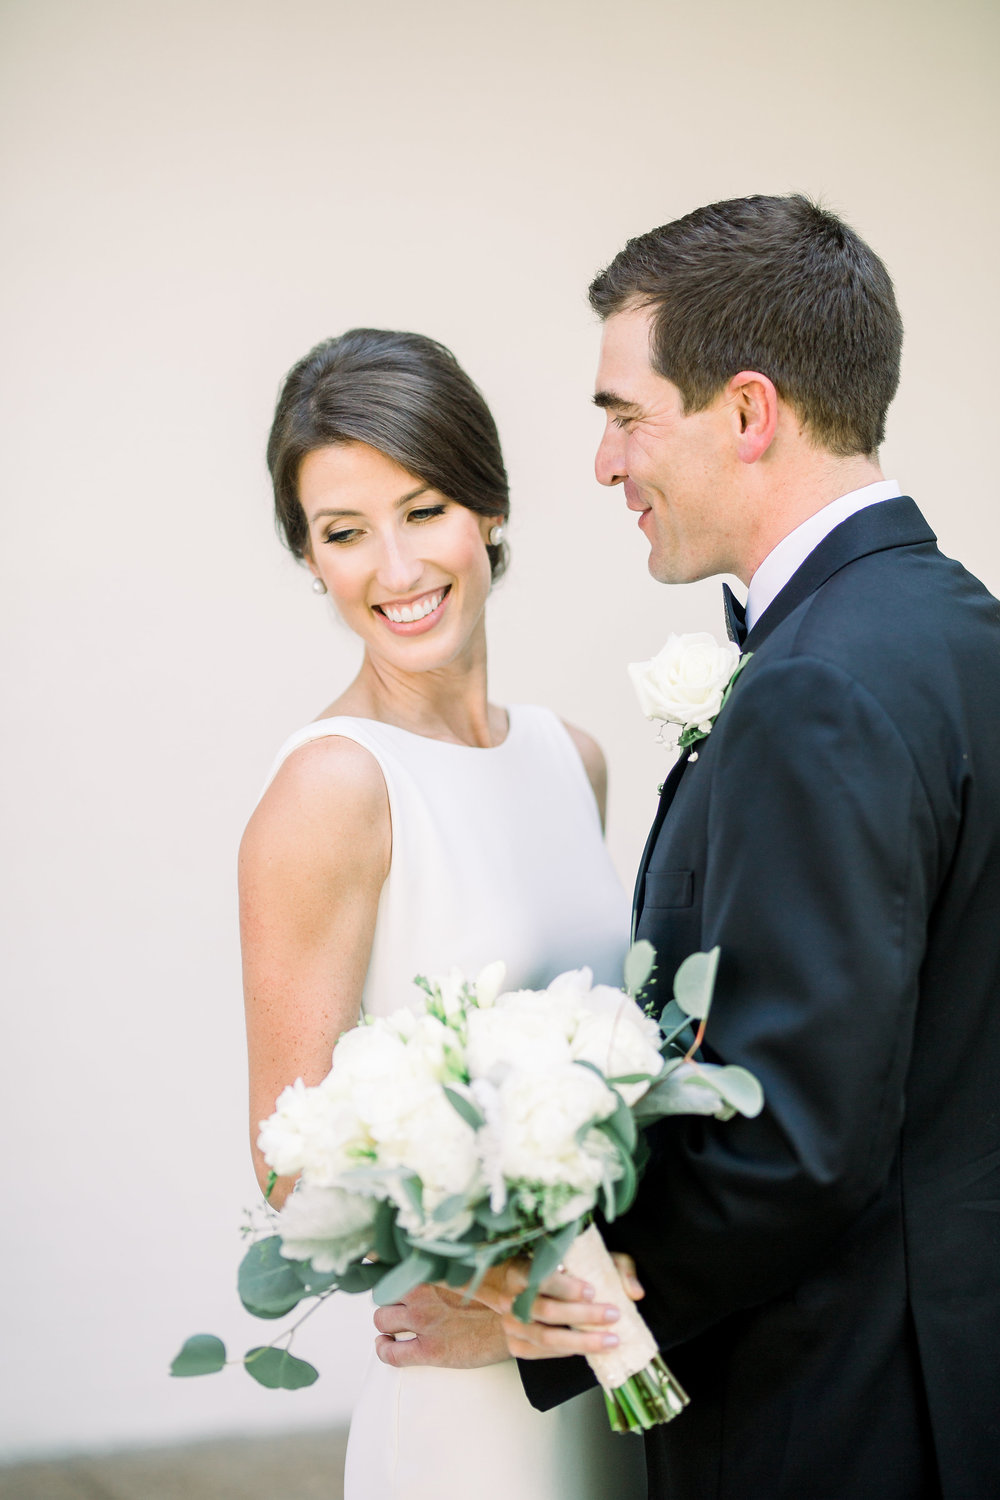 Bride&Groom-61.jpg